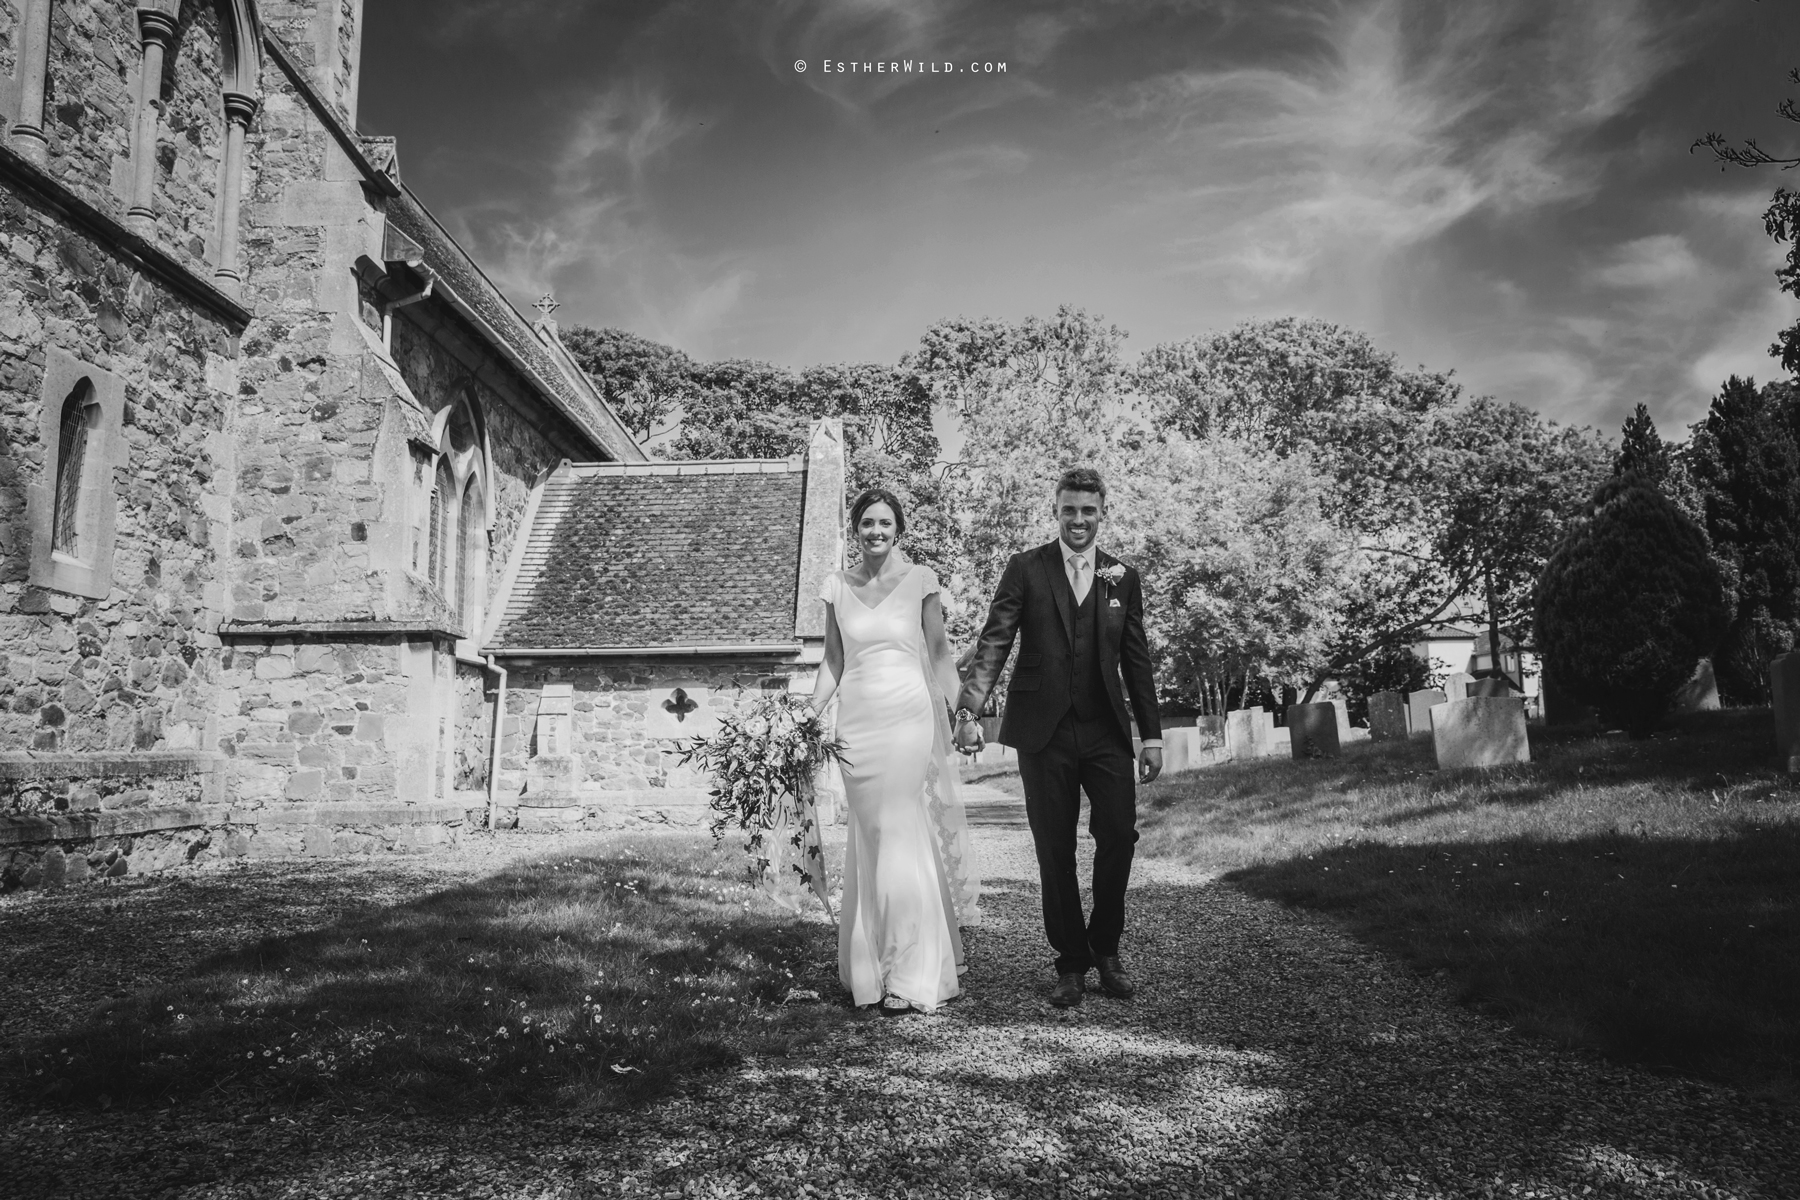 Wootton_Wedding_Copyright_Esther_Wild_Photographer_IMG_1481-1.jpg